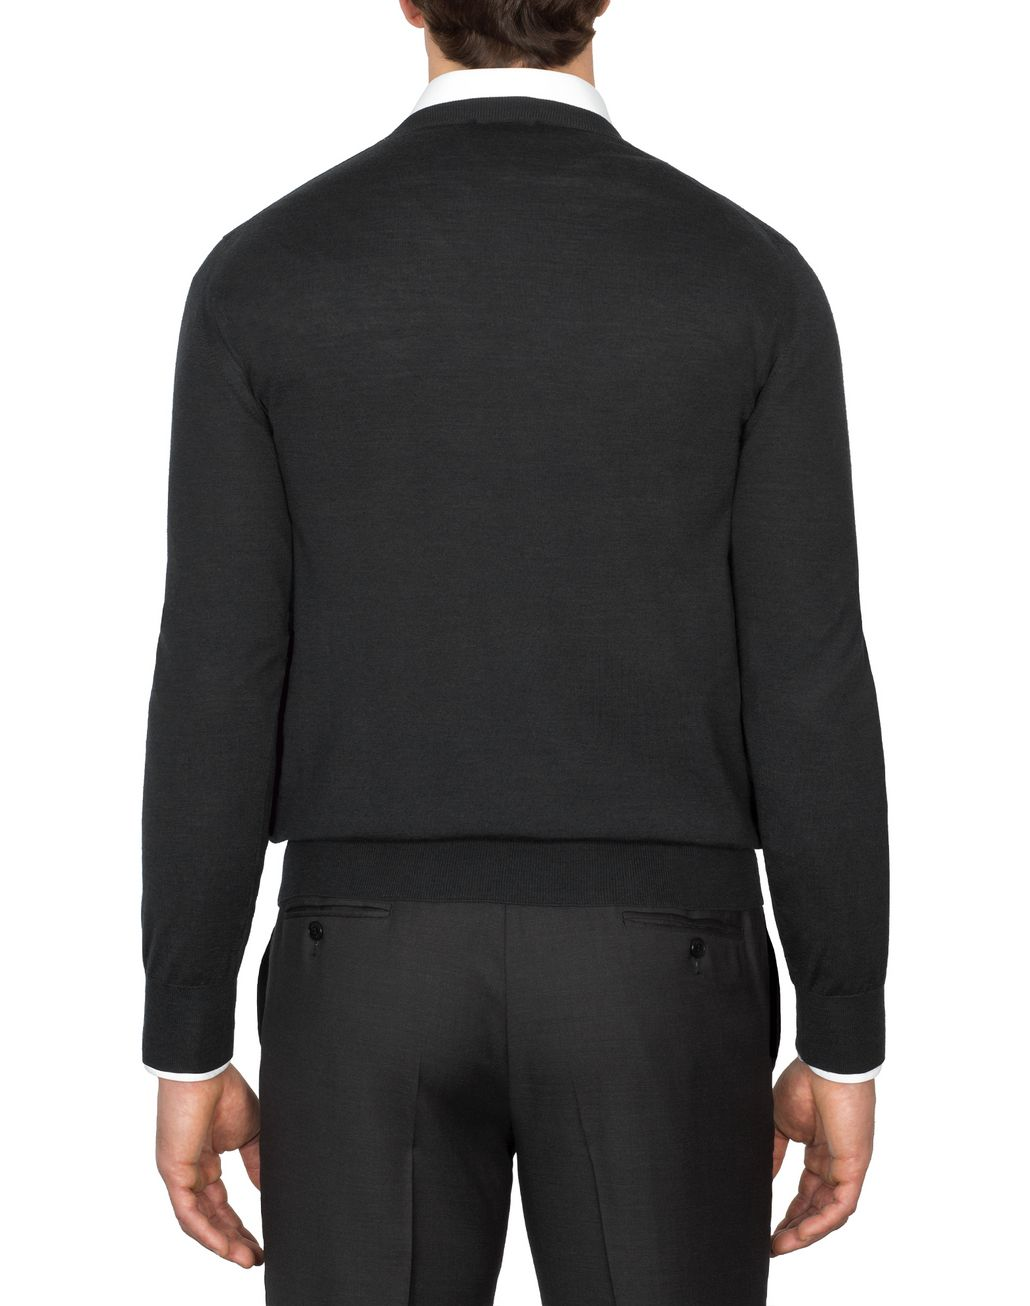 BRIONI 'Essential' Gray Crew-Neck Sweater Knitwear [*** pickupInStoreShippingNotGuaranteed_info ***] d